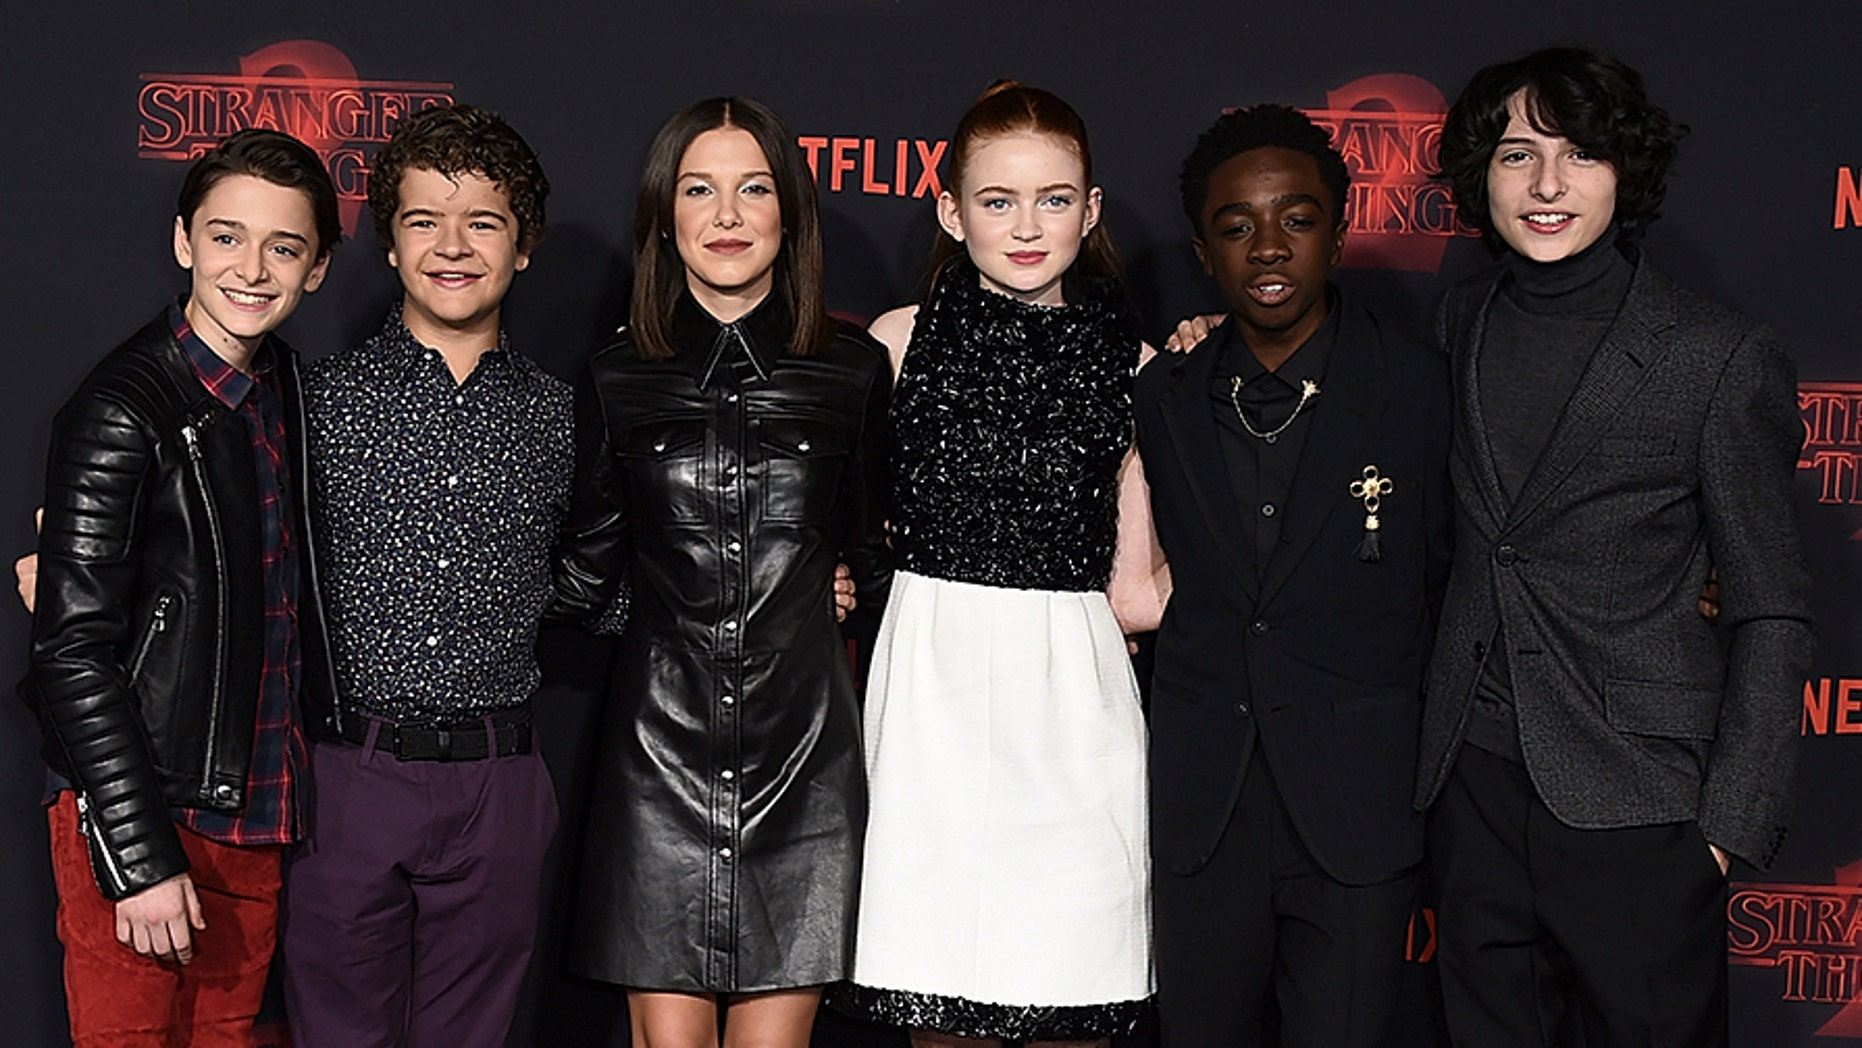 """Noah Schnapp, from left, Gaten Matarazzo, Millie Bobby Brown, Sadie Sink, Caleb McLaughlin and Finn Wolfhard arrive at the premiere of """"Stranger Things"""" season two at the Regency Bruin Theatre on Thursday, Oct. 26, 2017, in Los Angeles. (Photo by Jordan Strauss/Invision/AP)"""